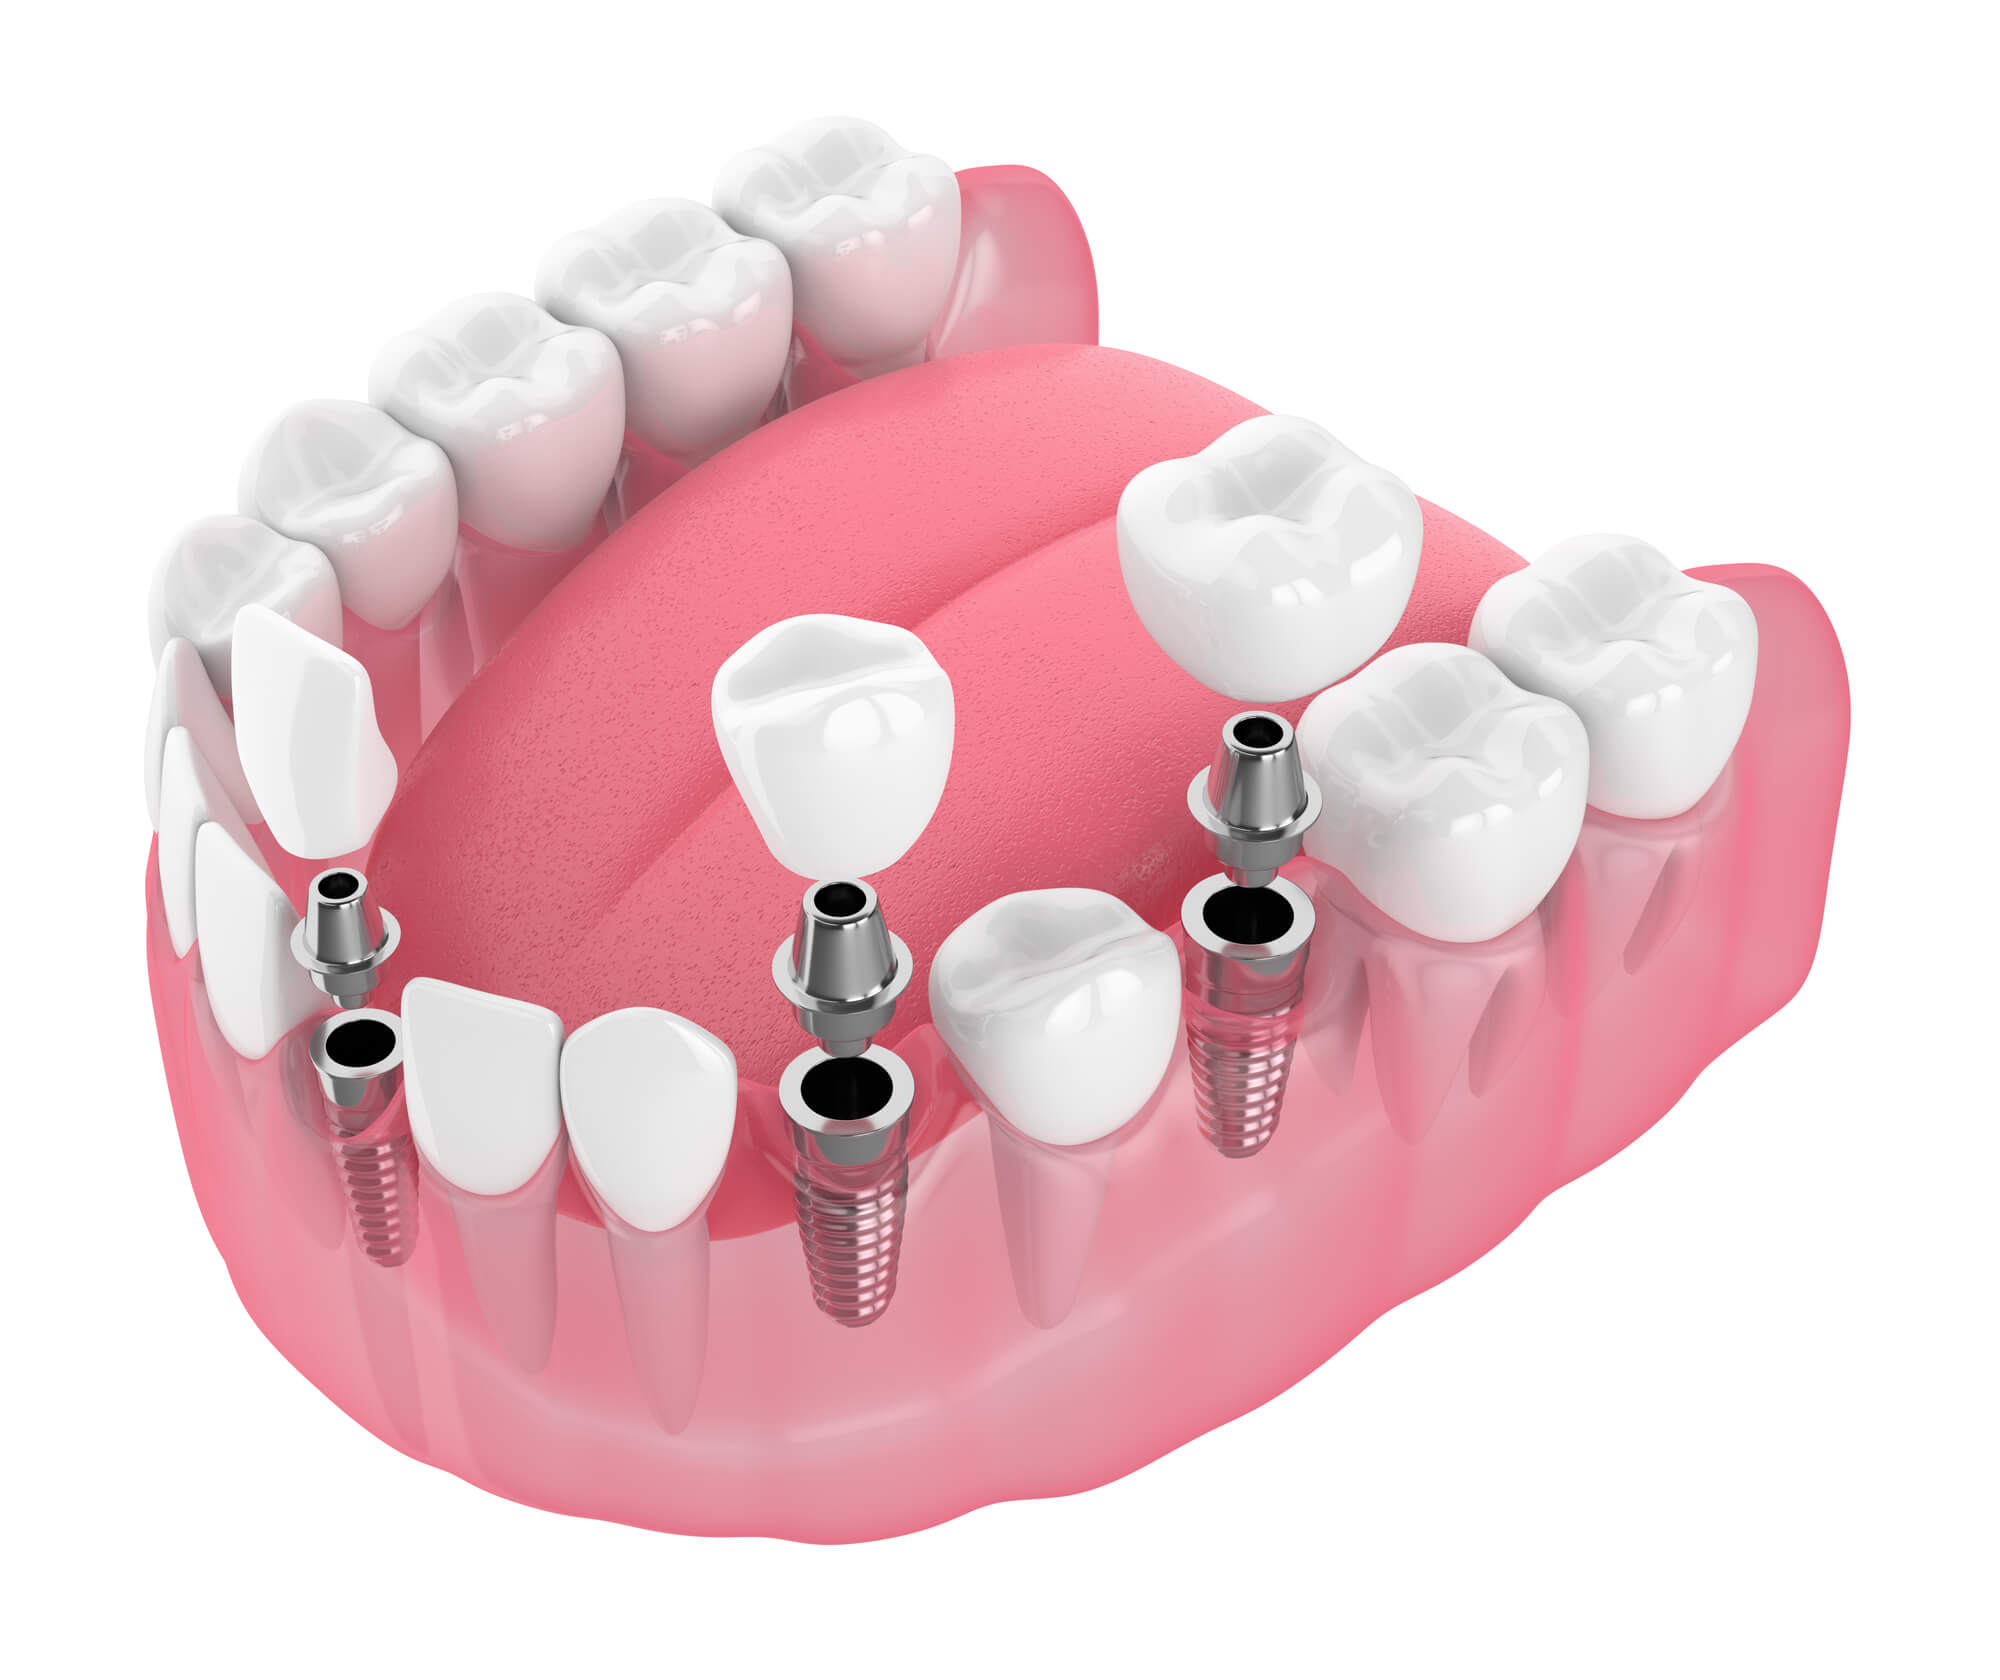 Why Should I Choose Ceramic Implants?